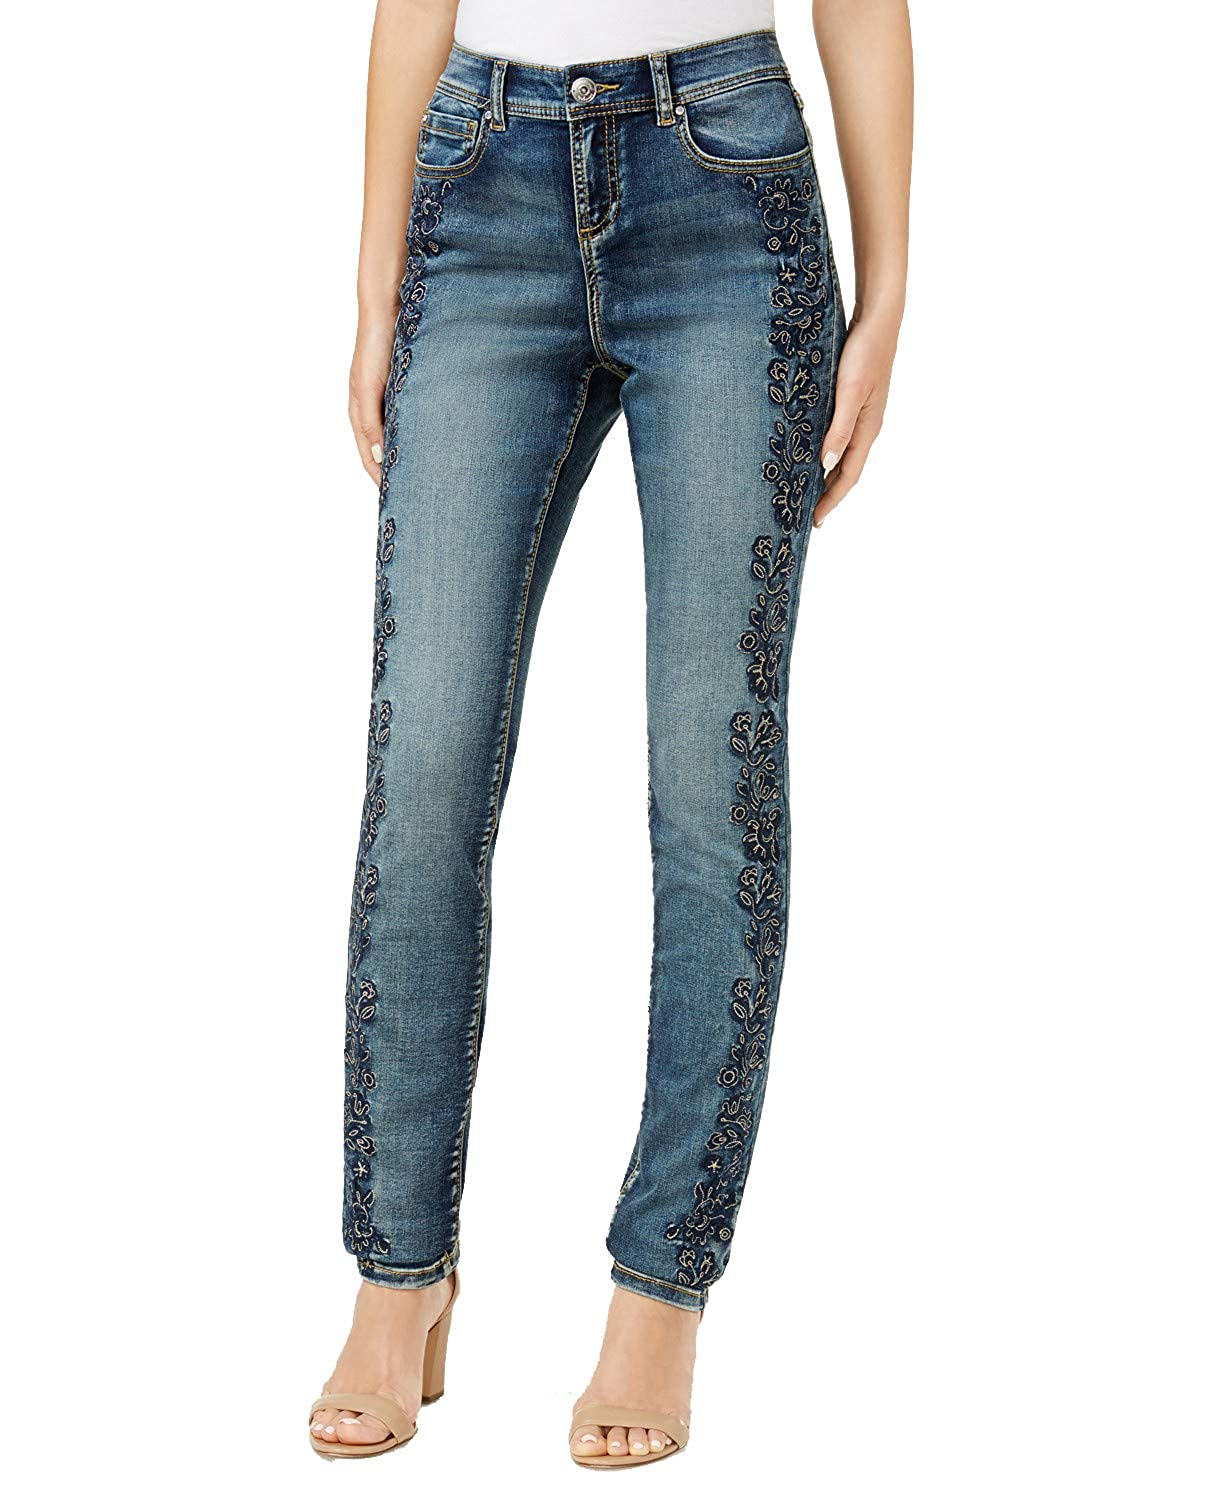 INC International Concepts Embroidered Skinny Jeans